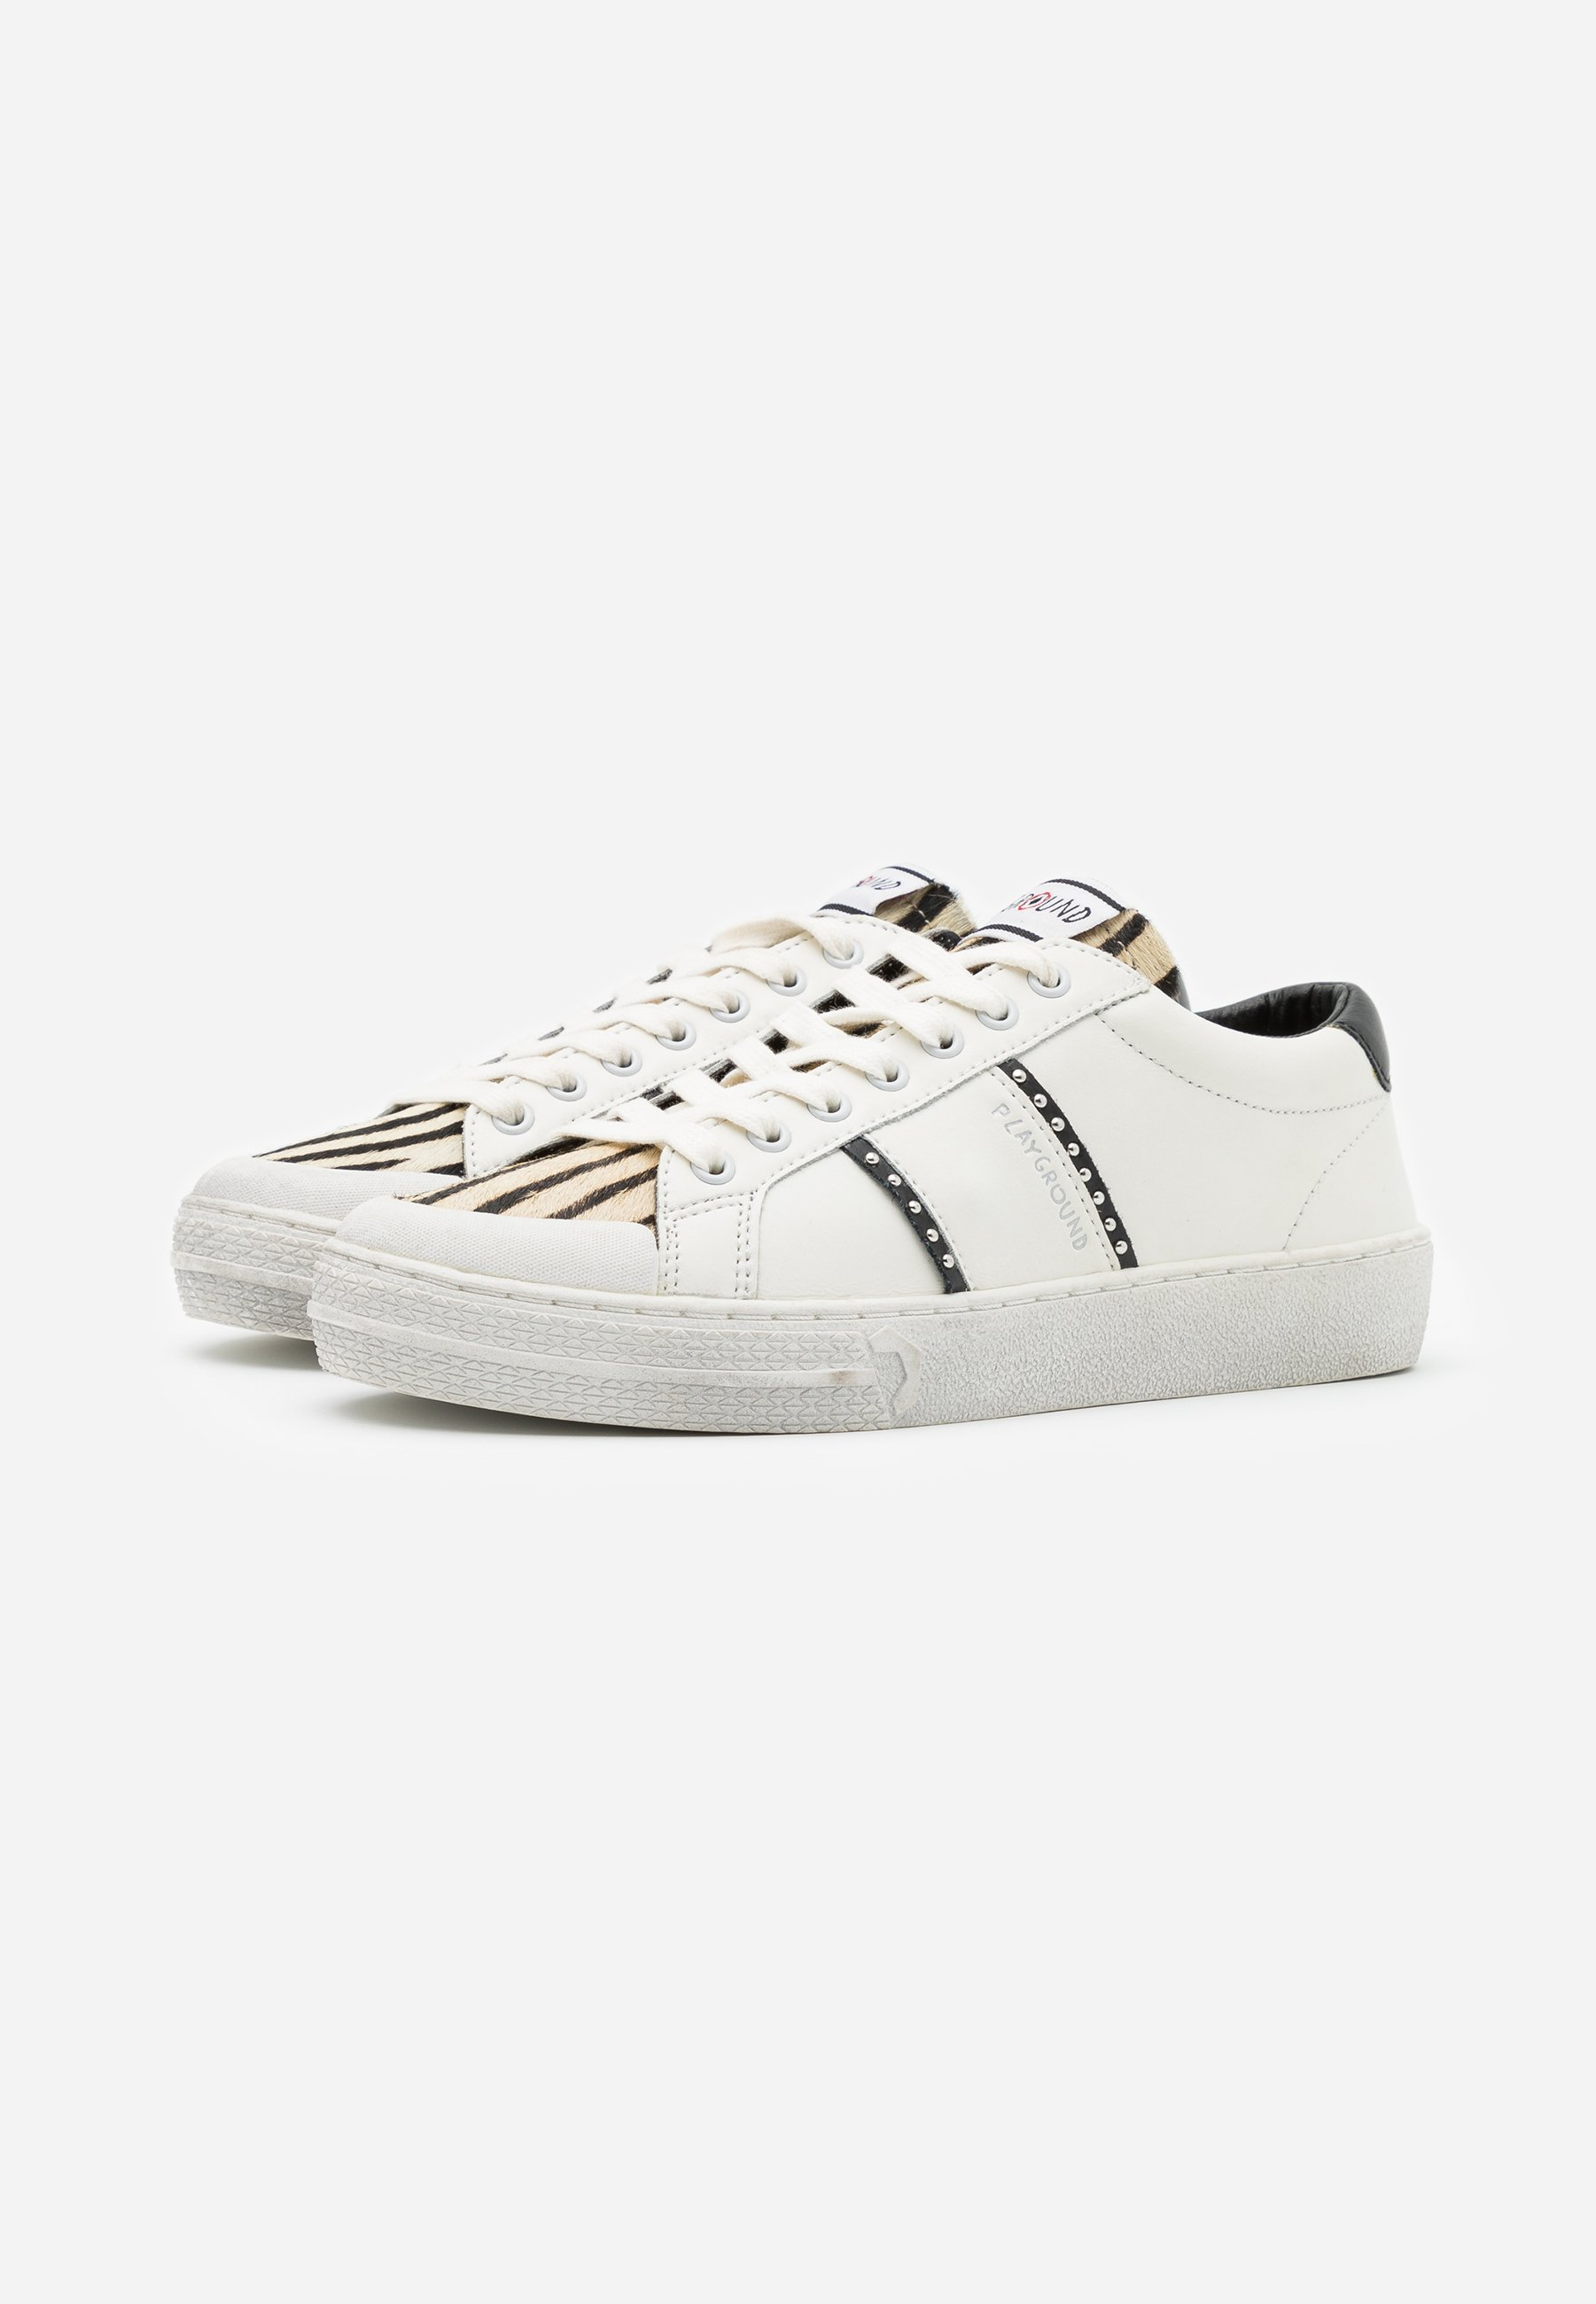 Moa - Master Of Arts Triks Sneakers White